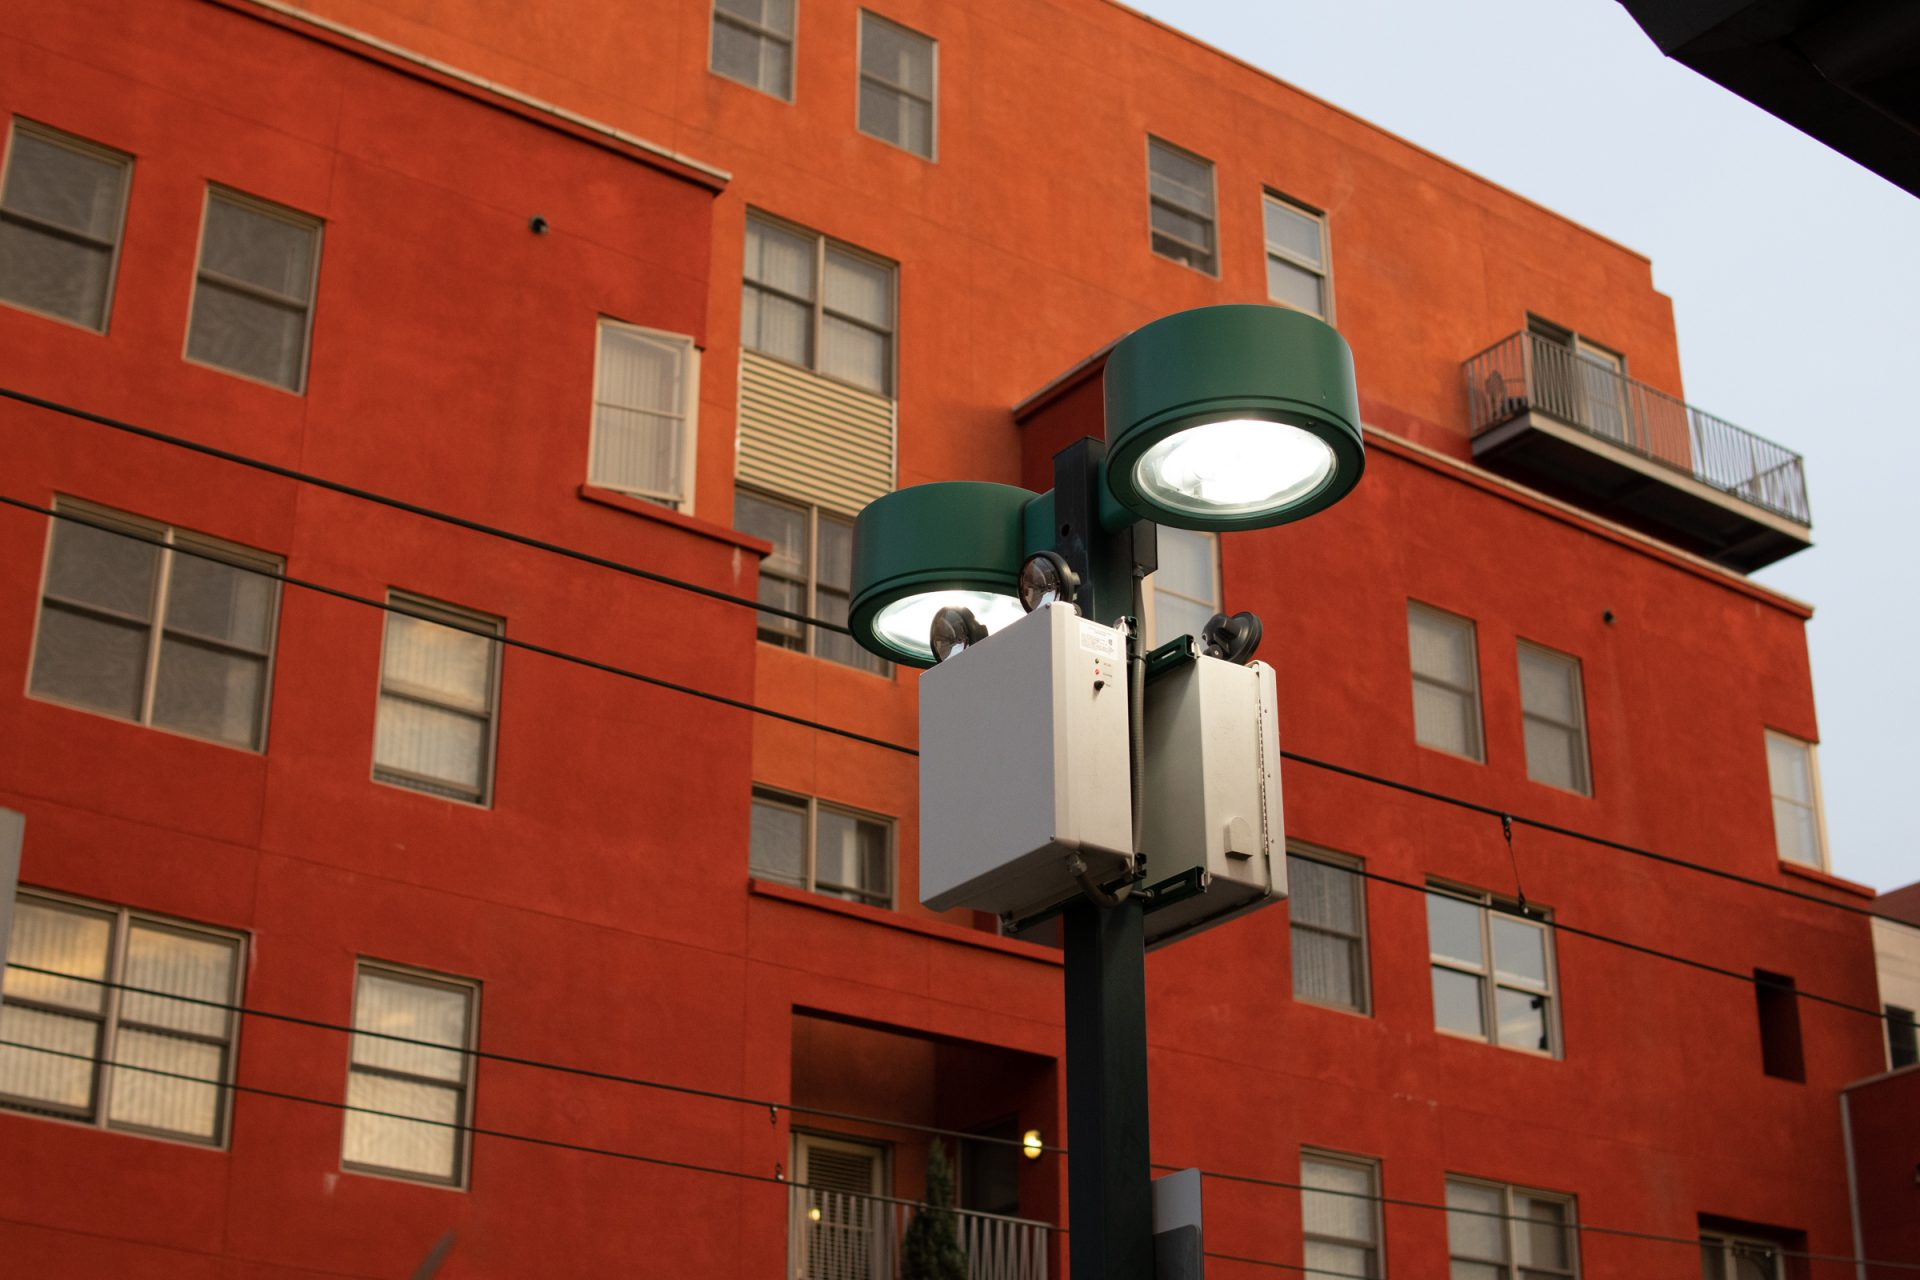 Streetlight In Front Of Red Orange Apartment Building